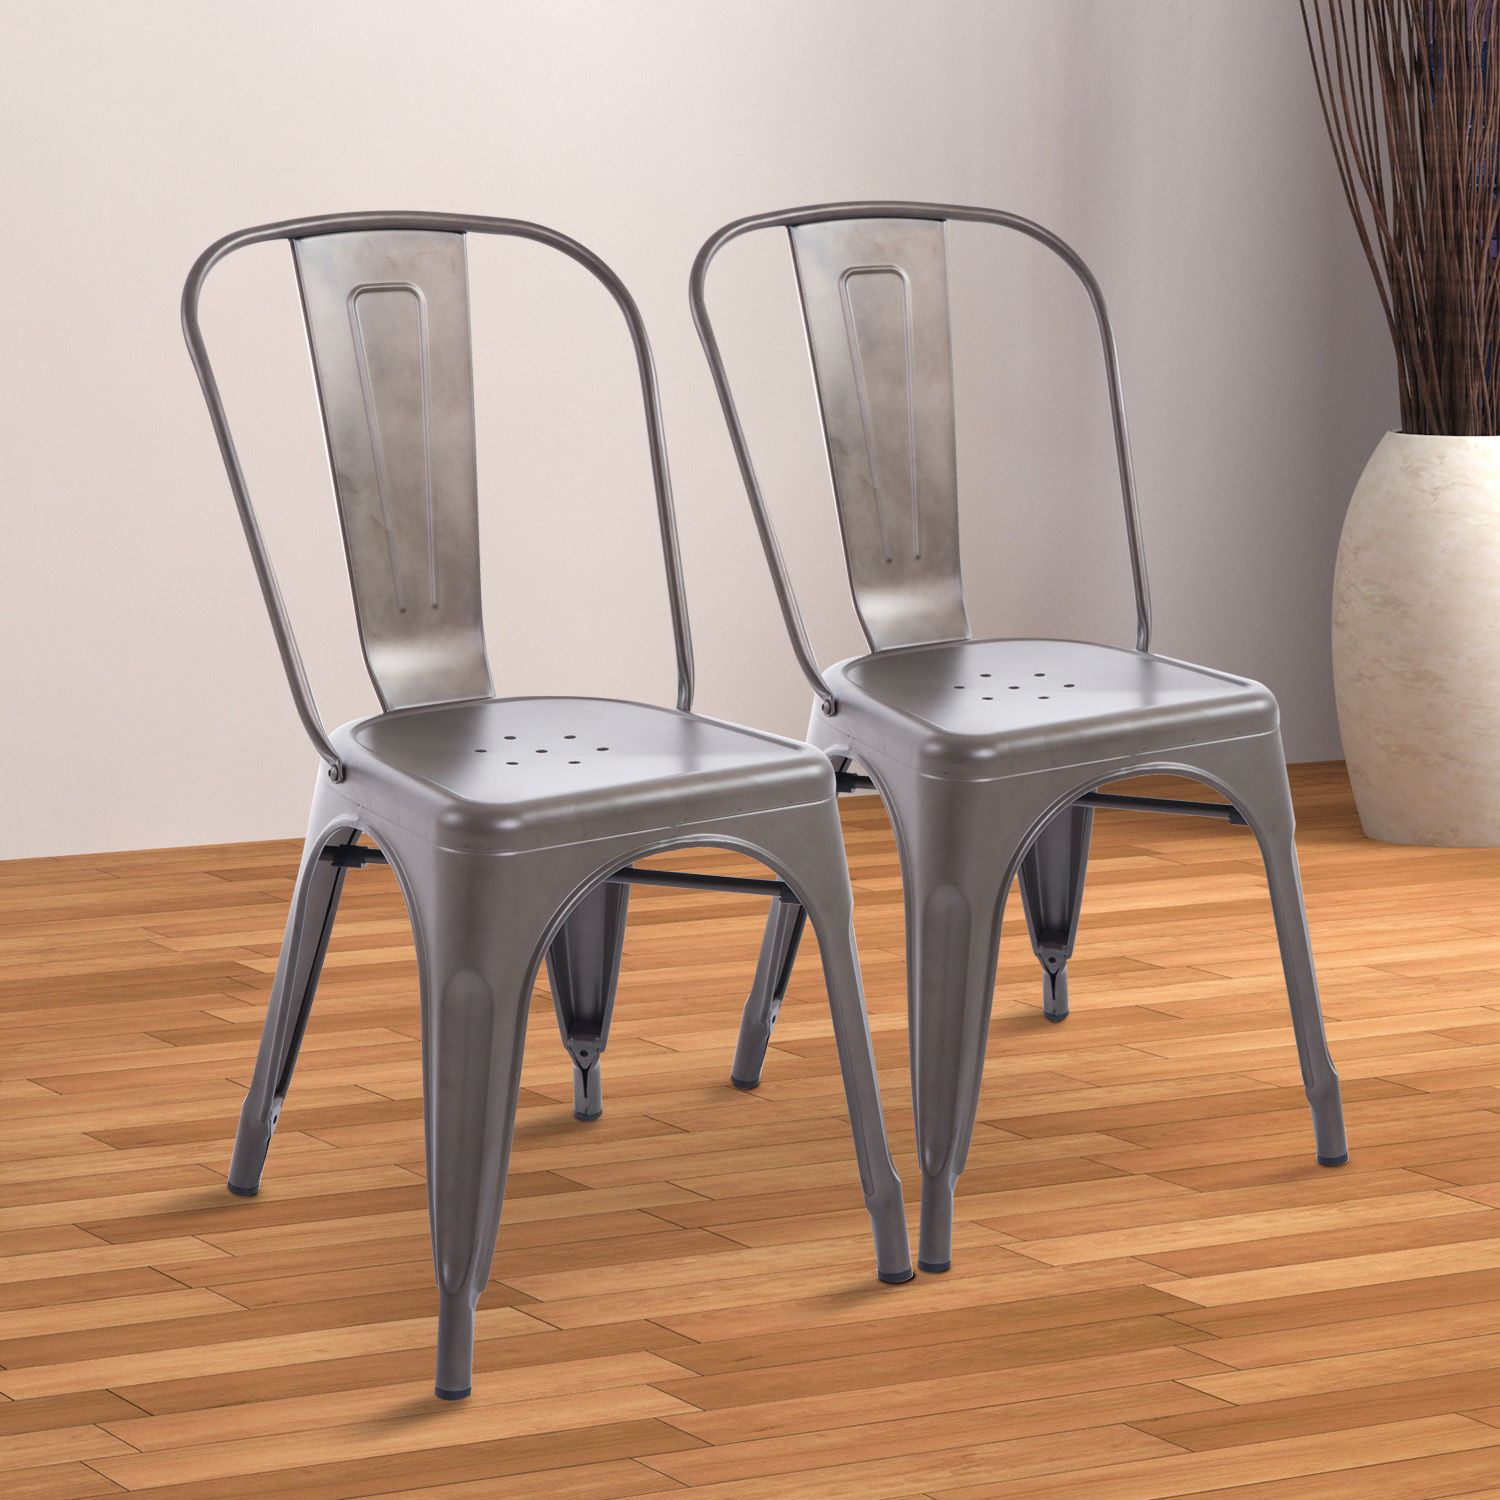 rustic metal dining chairs ergonomic outdoor chair set of 2 steel vintage